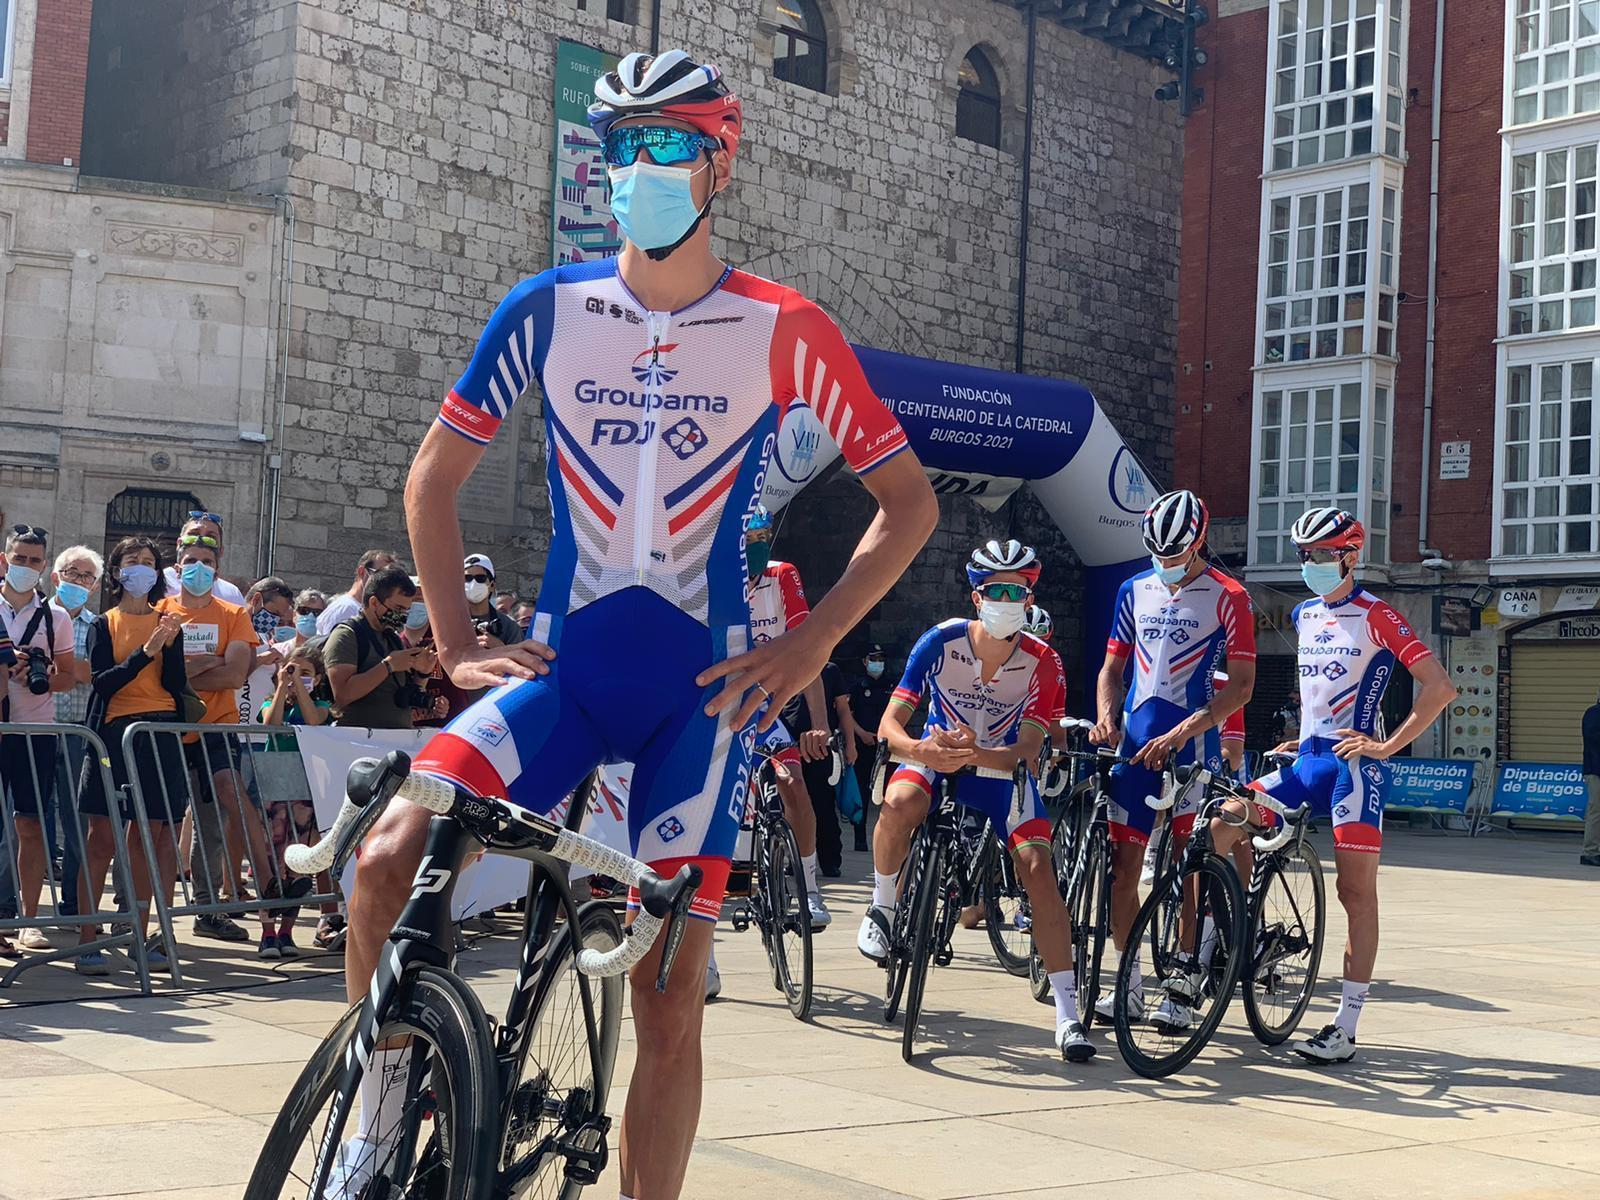 Cyclists of the Groupama Quick-Step